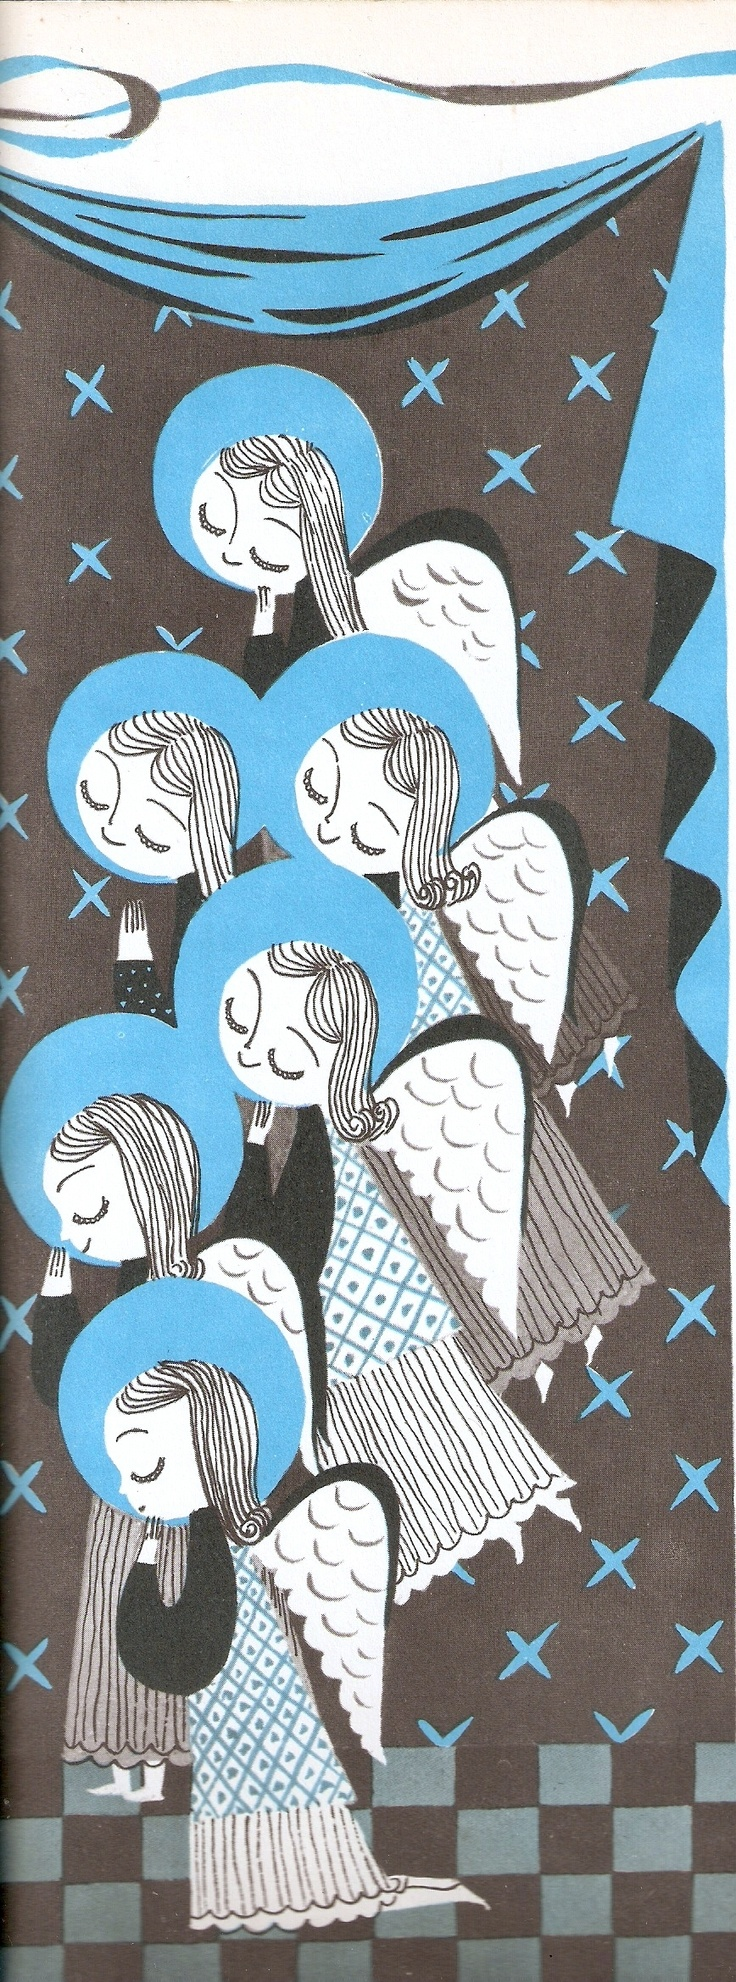 Mary Blair's angels